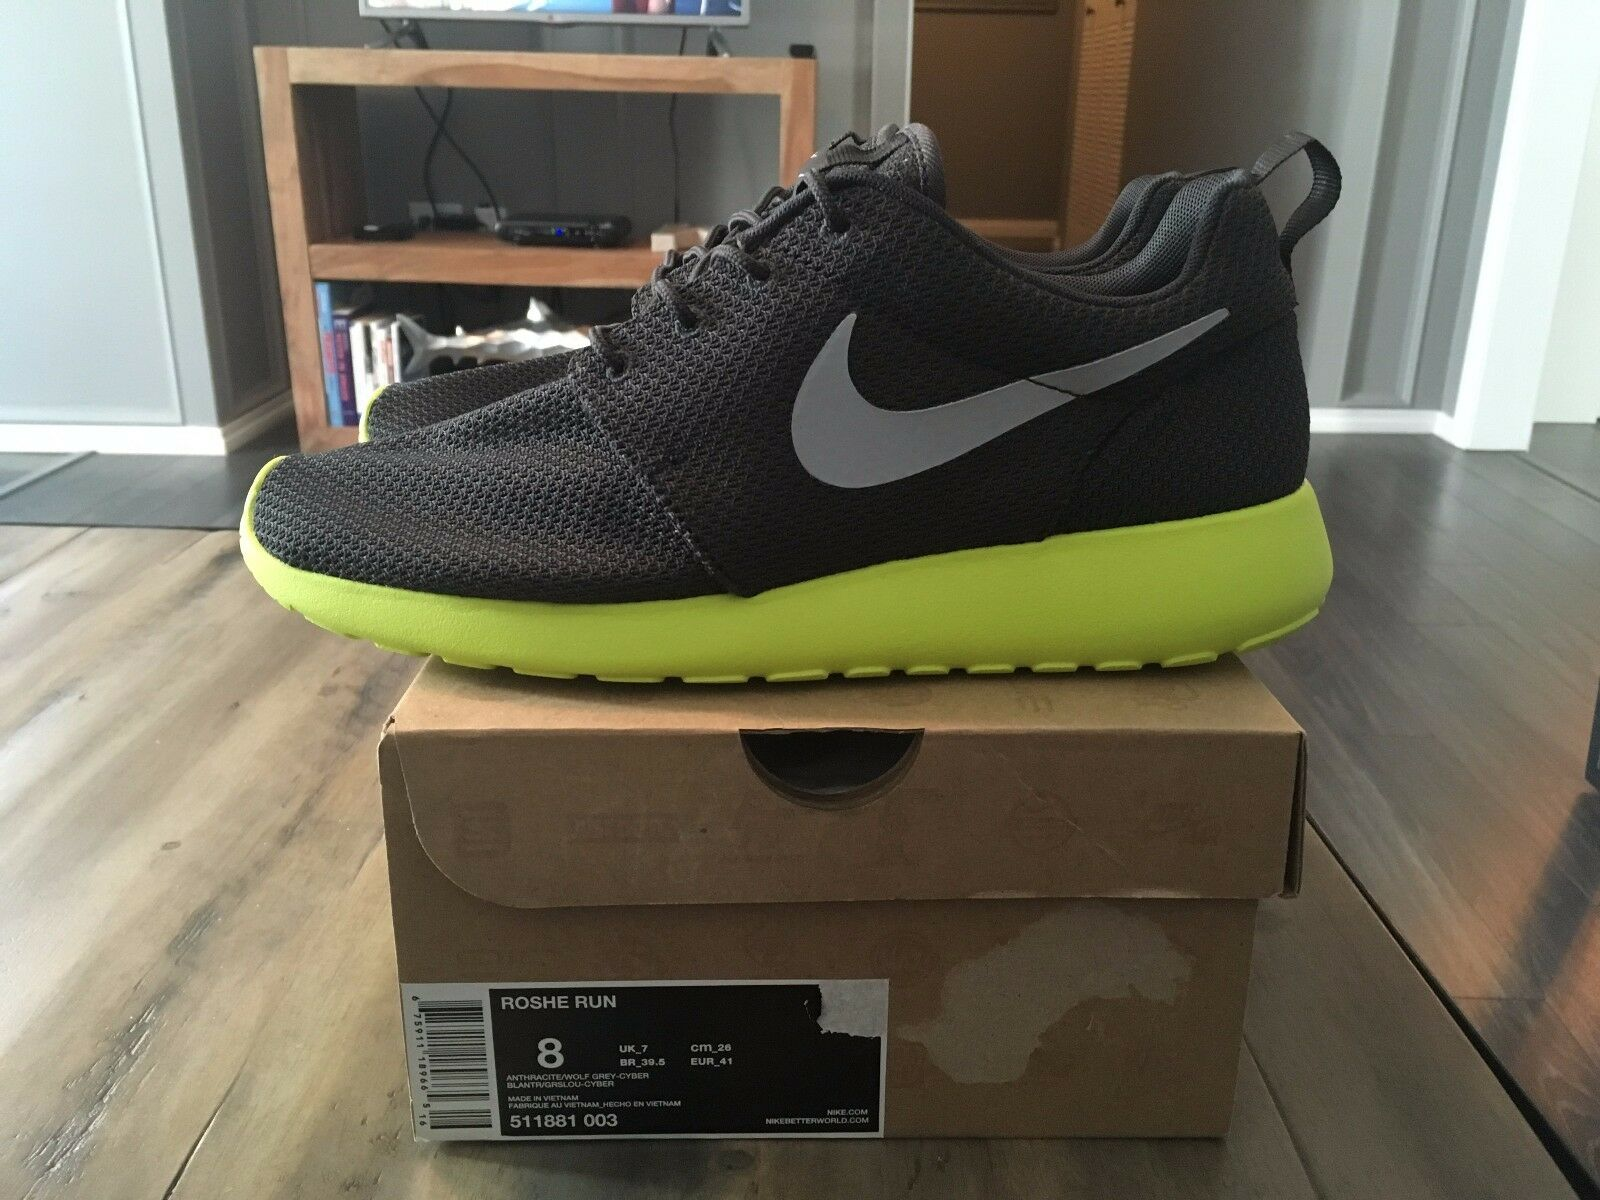 Nike Roshe Run Cyber Wolf Grey Anthracite Size 8 Brand New OG 511881-003